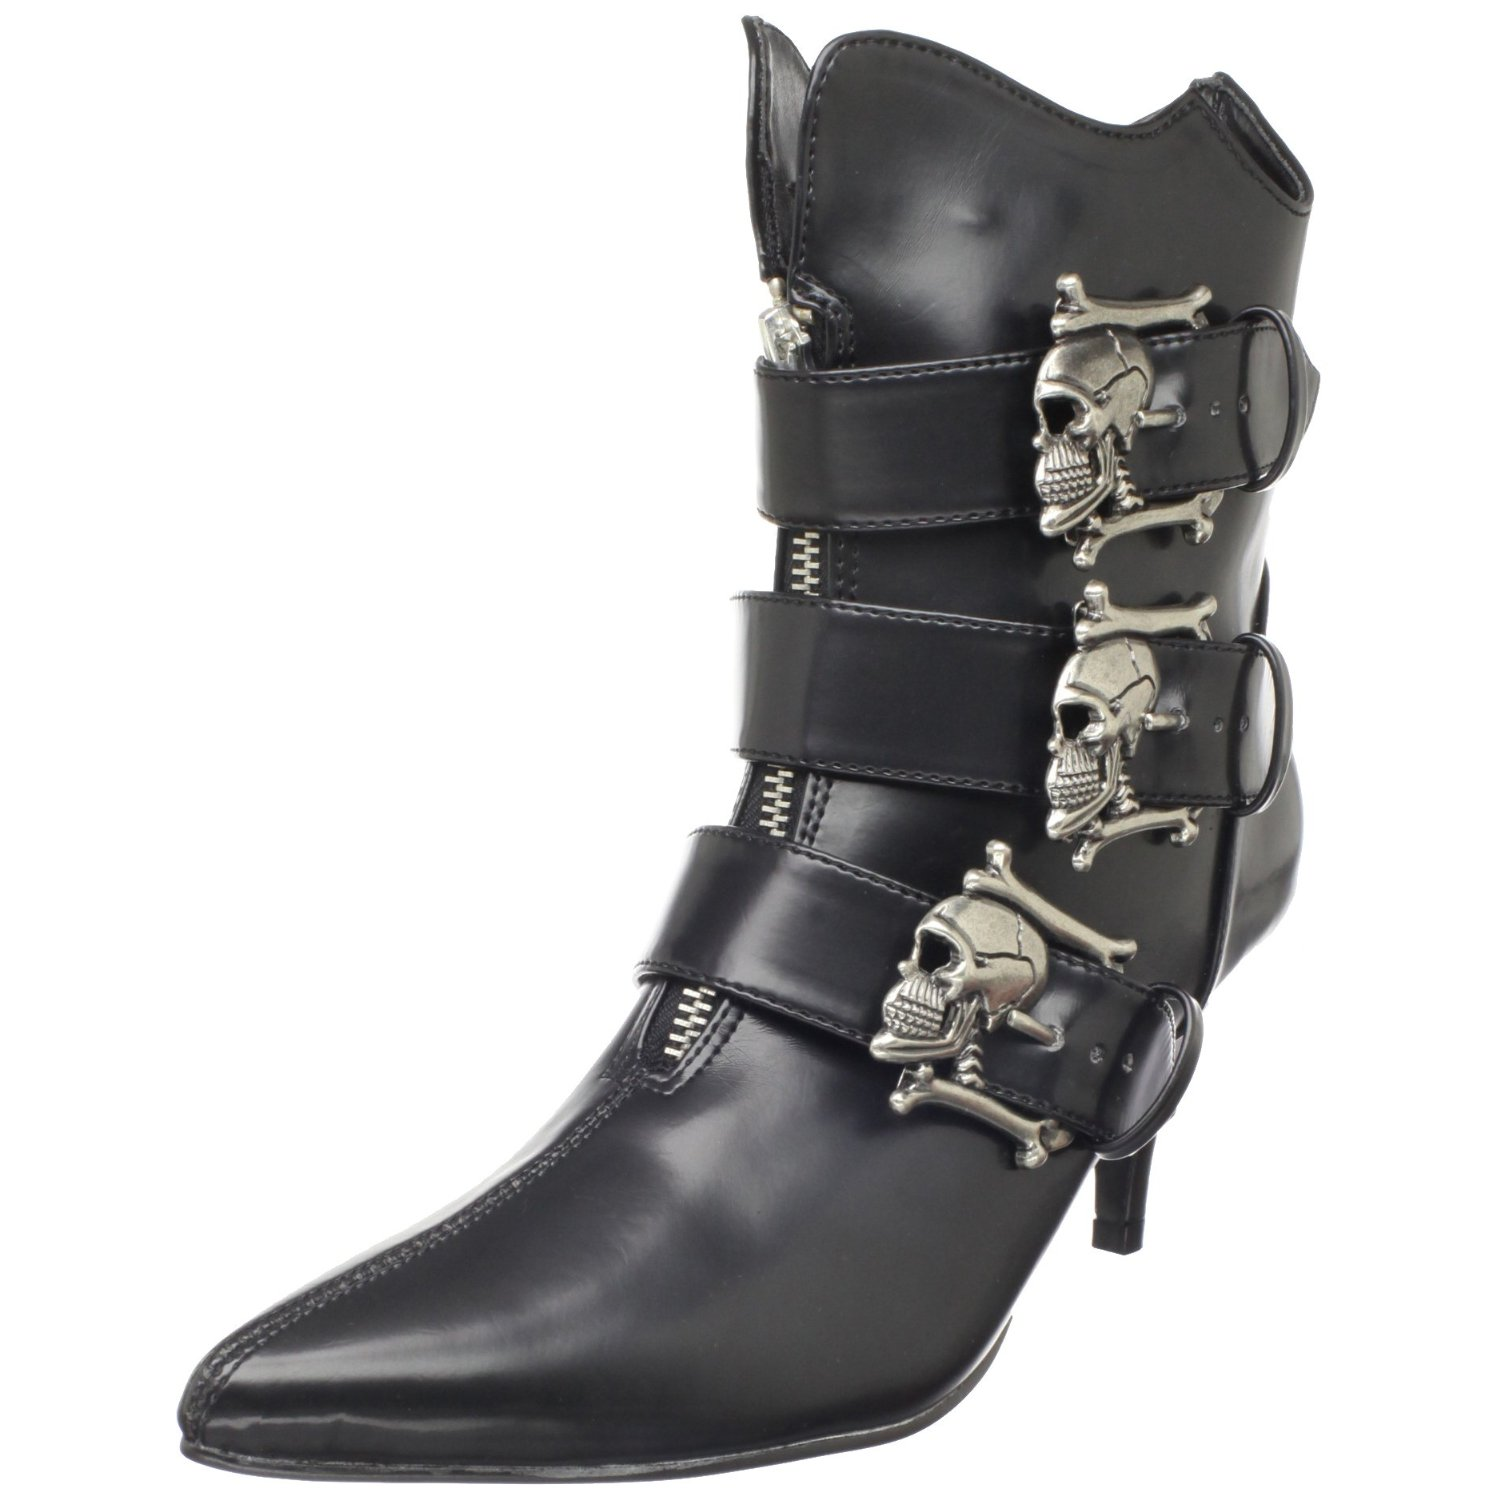 Sexy vegan goth boots with skull buckles